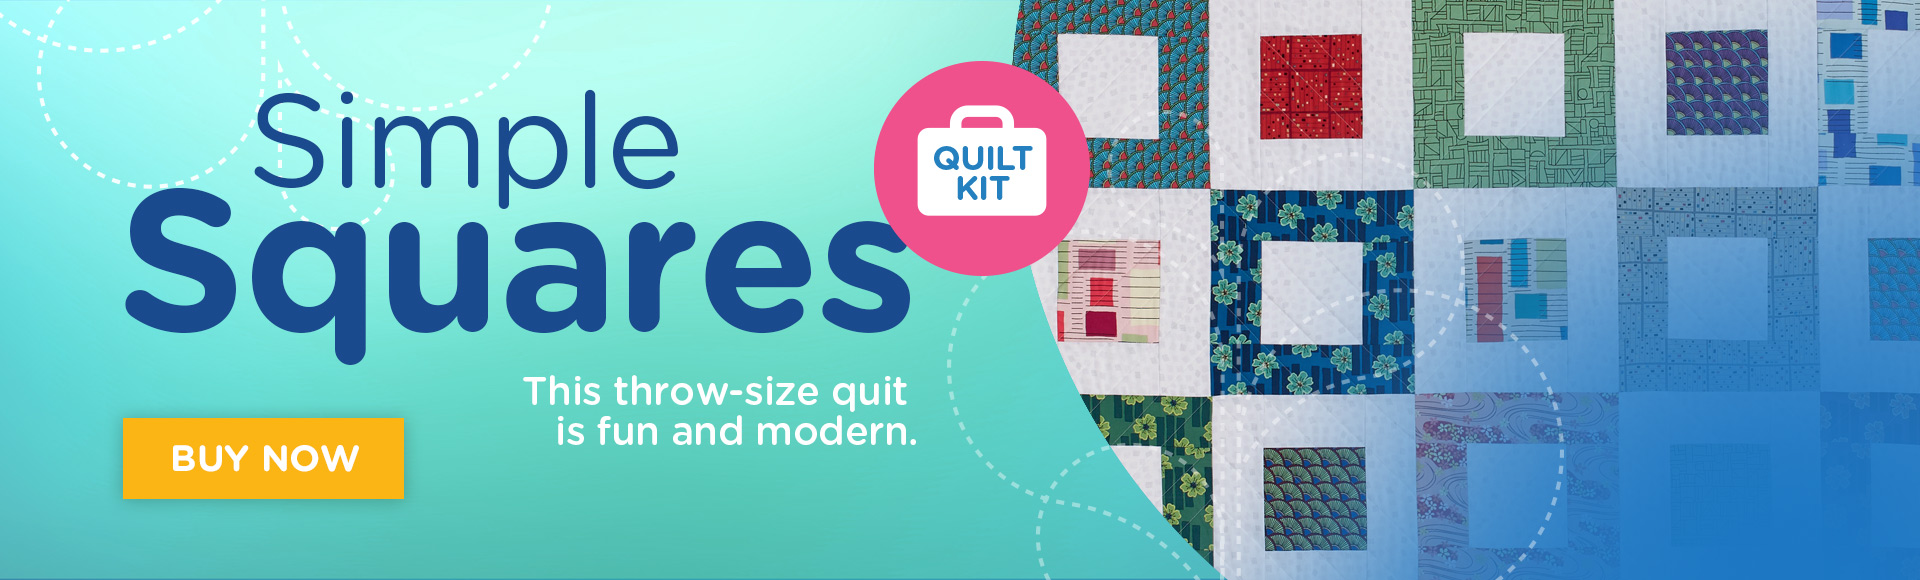 Simple Squares Quilt Kit Banner Ad